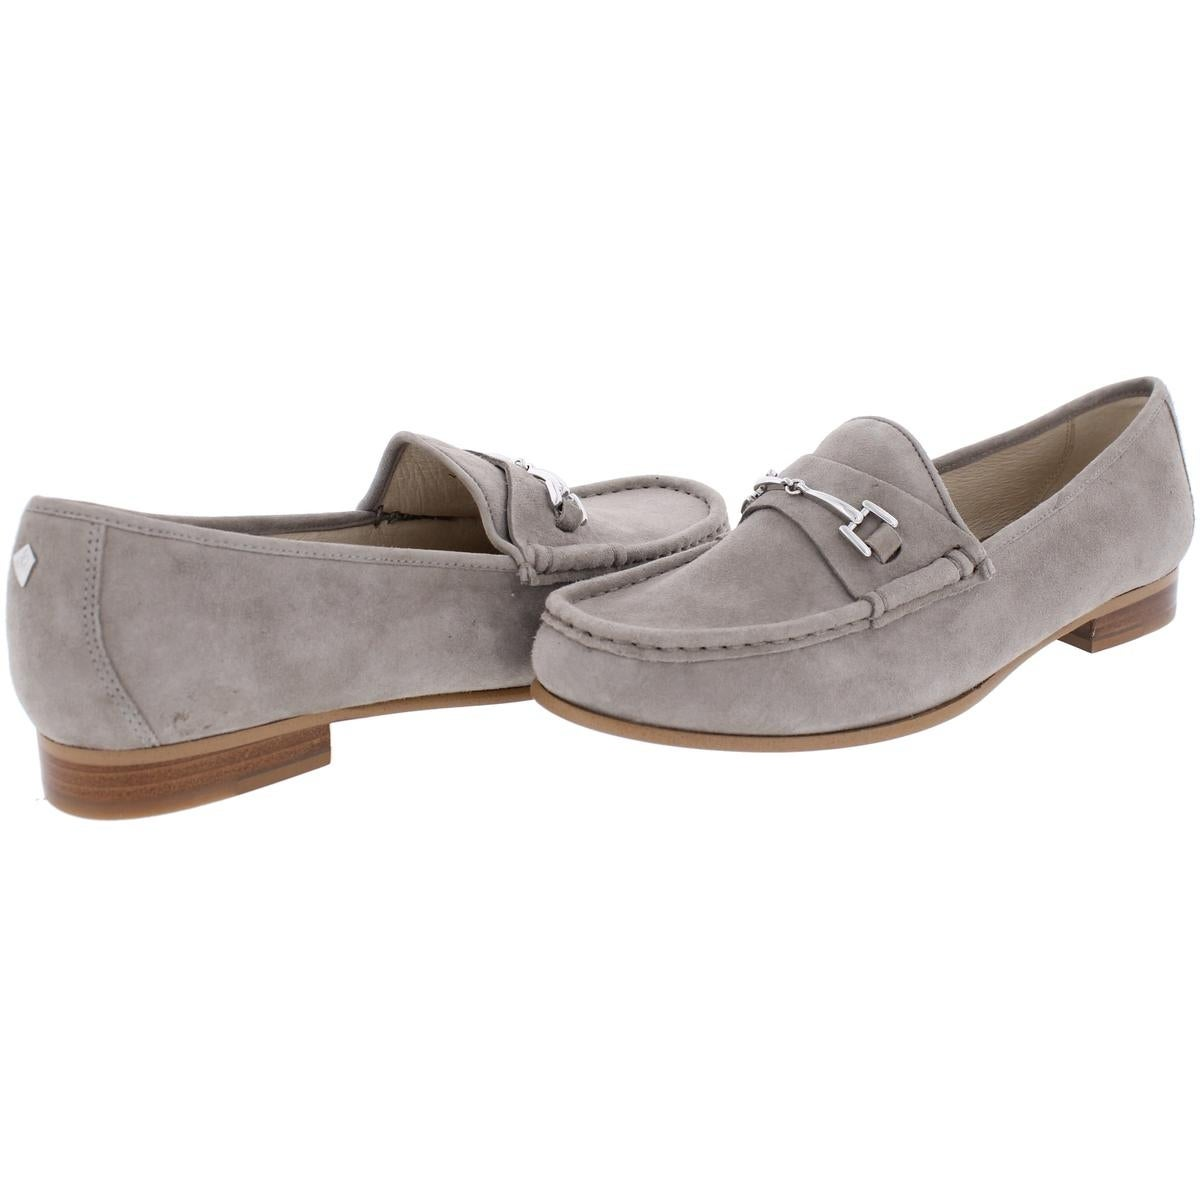 436be6dd9a5 Shop Sam Edelman Womens Talia Loafers Buckle - Free Shipping On Orders Over   45 - Overstock - 15412088